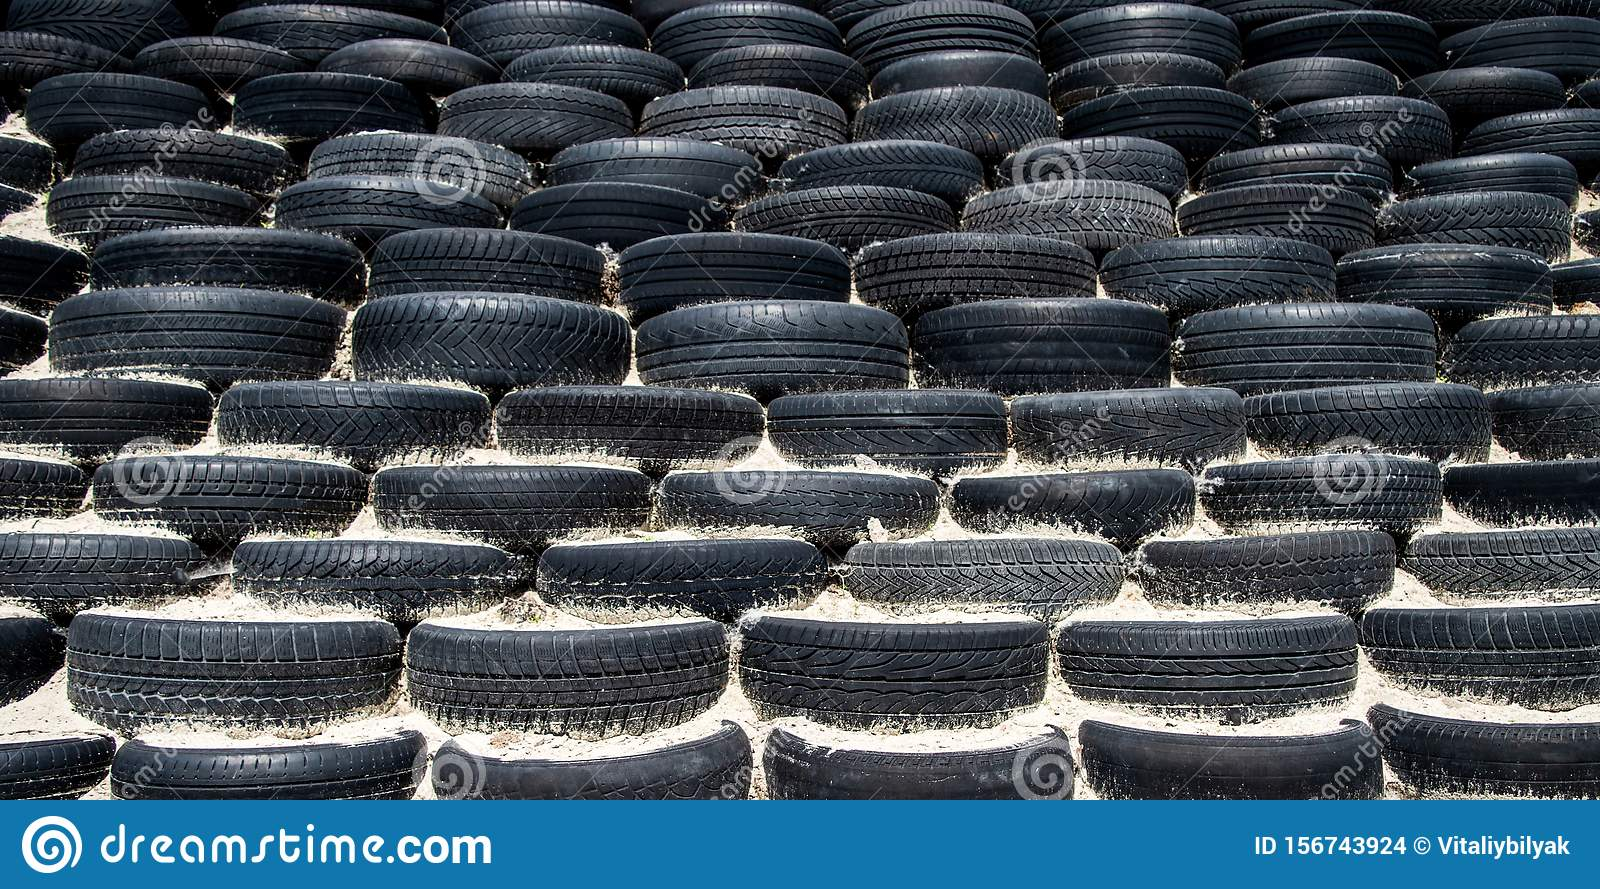 Tyre wall for sports and competition.